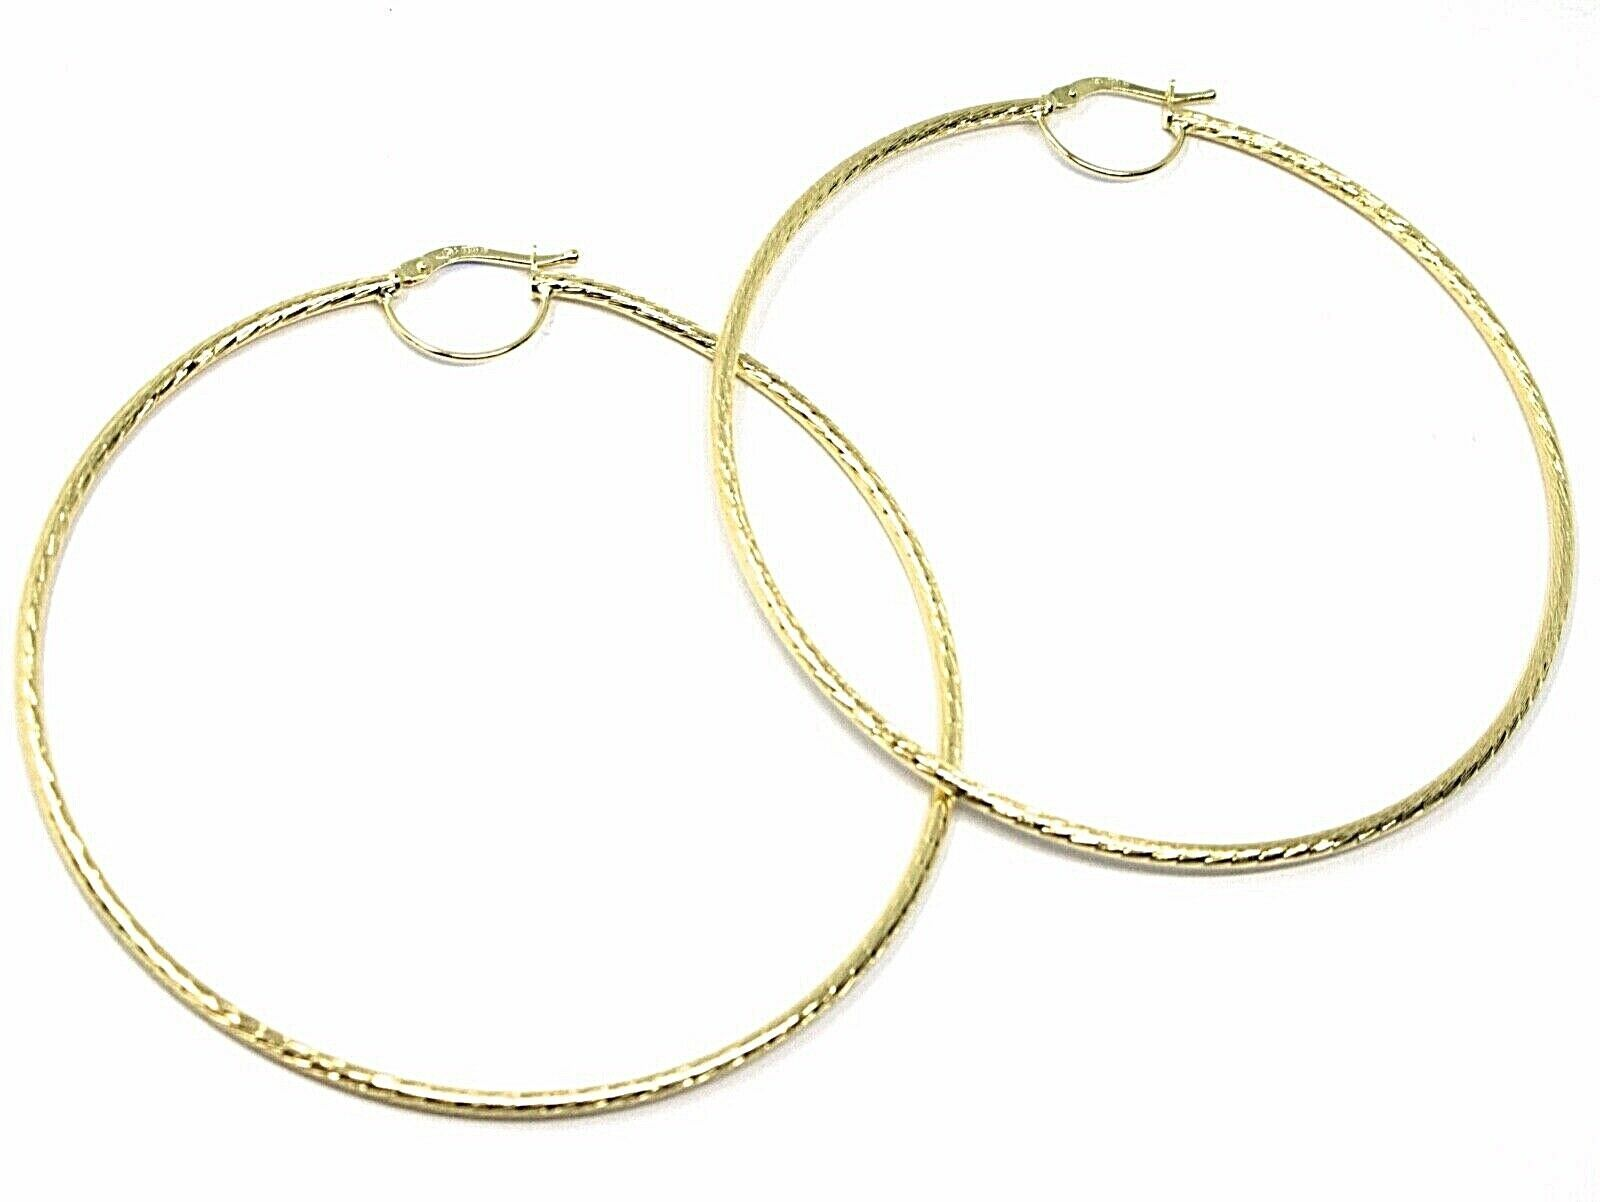 18K YELLOW GOLD BIG CIRCLE HOOPS DIAMETER 67mm EARRINGS TUBE 2mm FACETED STRIPED